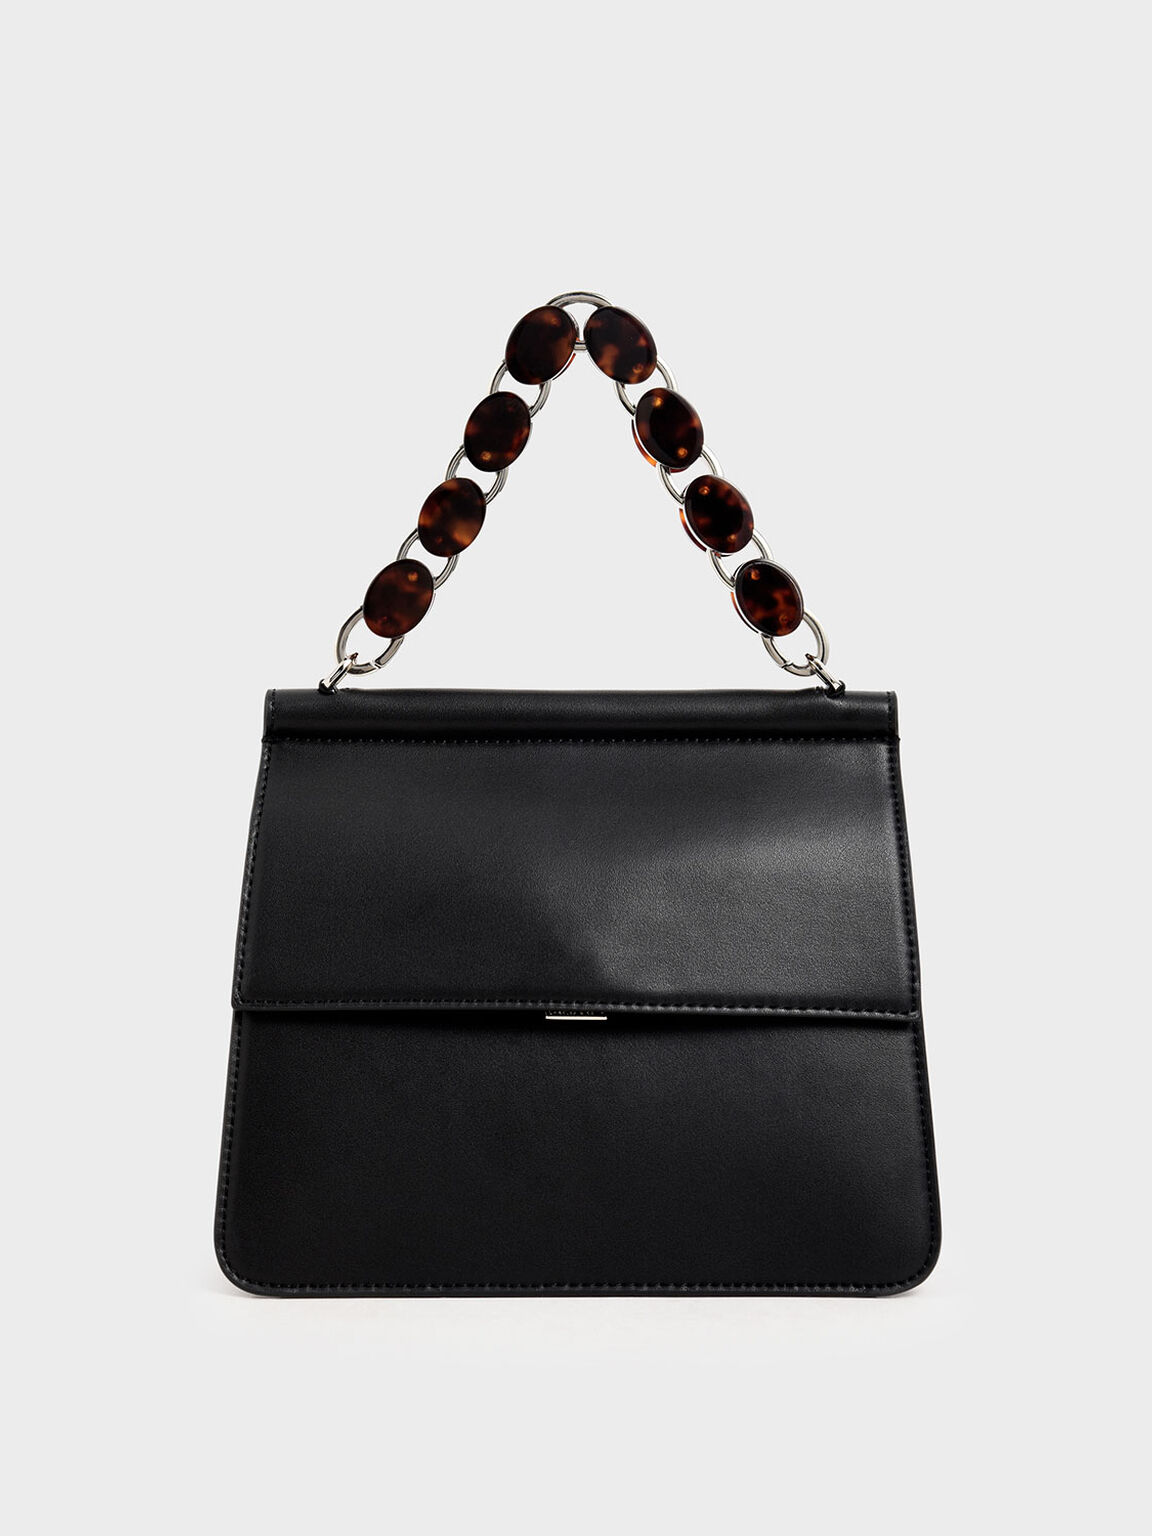 Acrylic Tortoiseshell Top Handle Bag, Black, hi-res